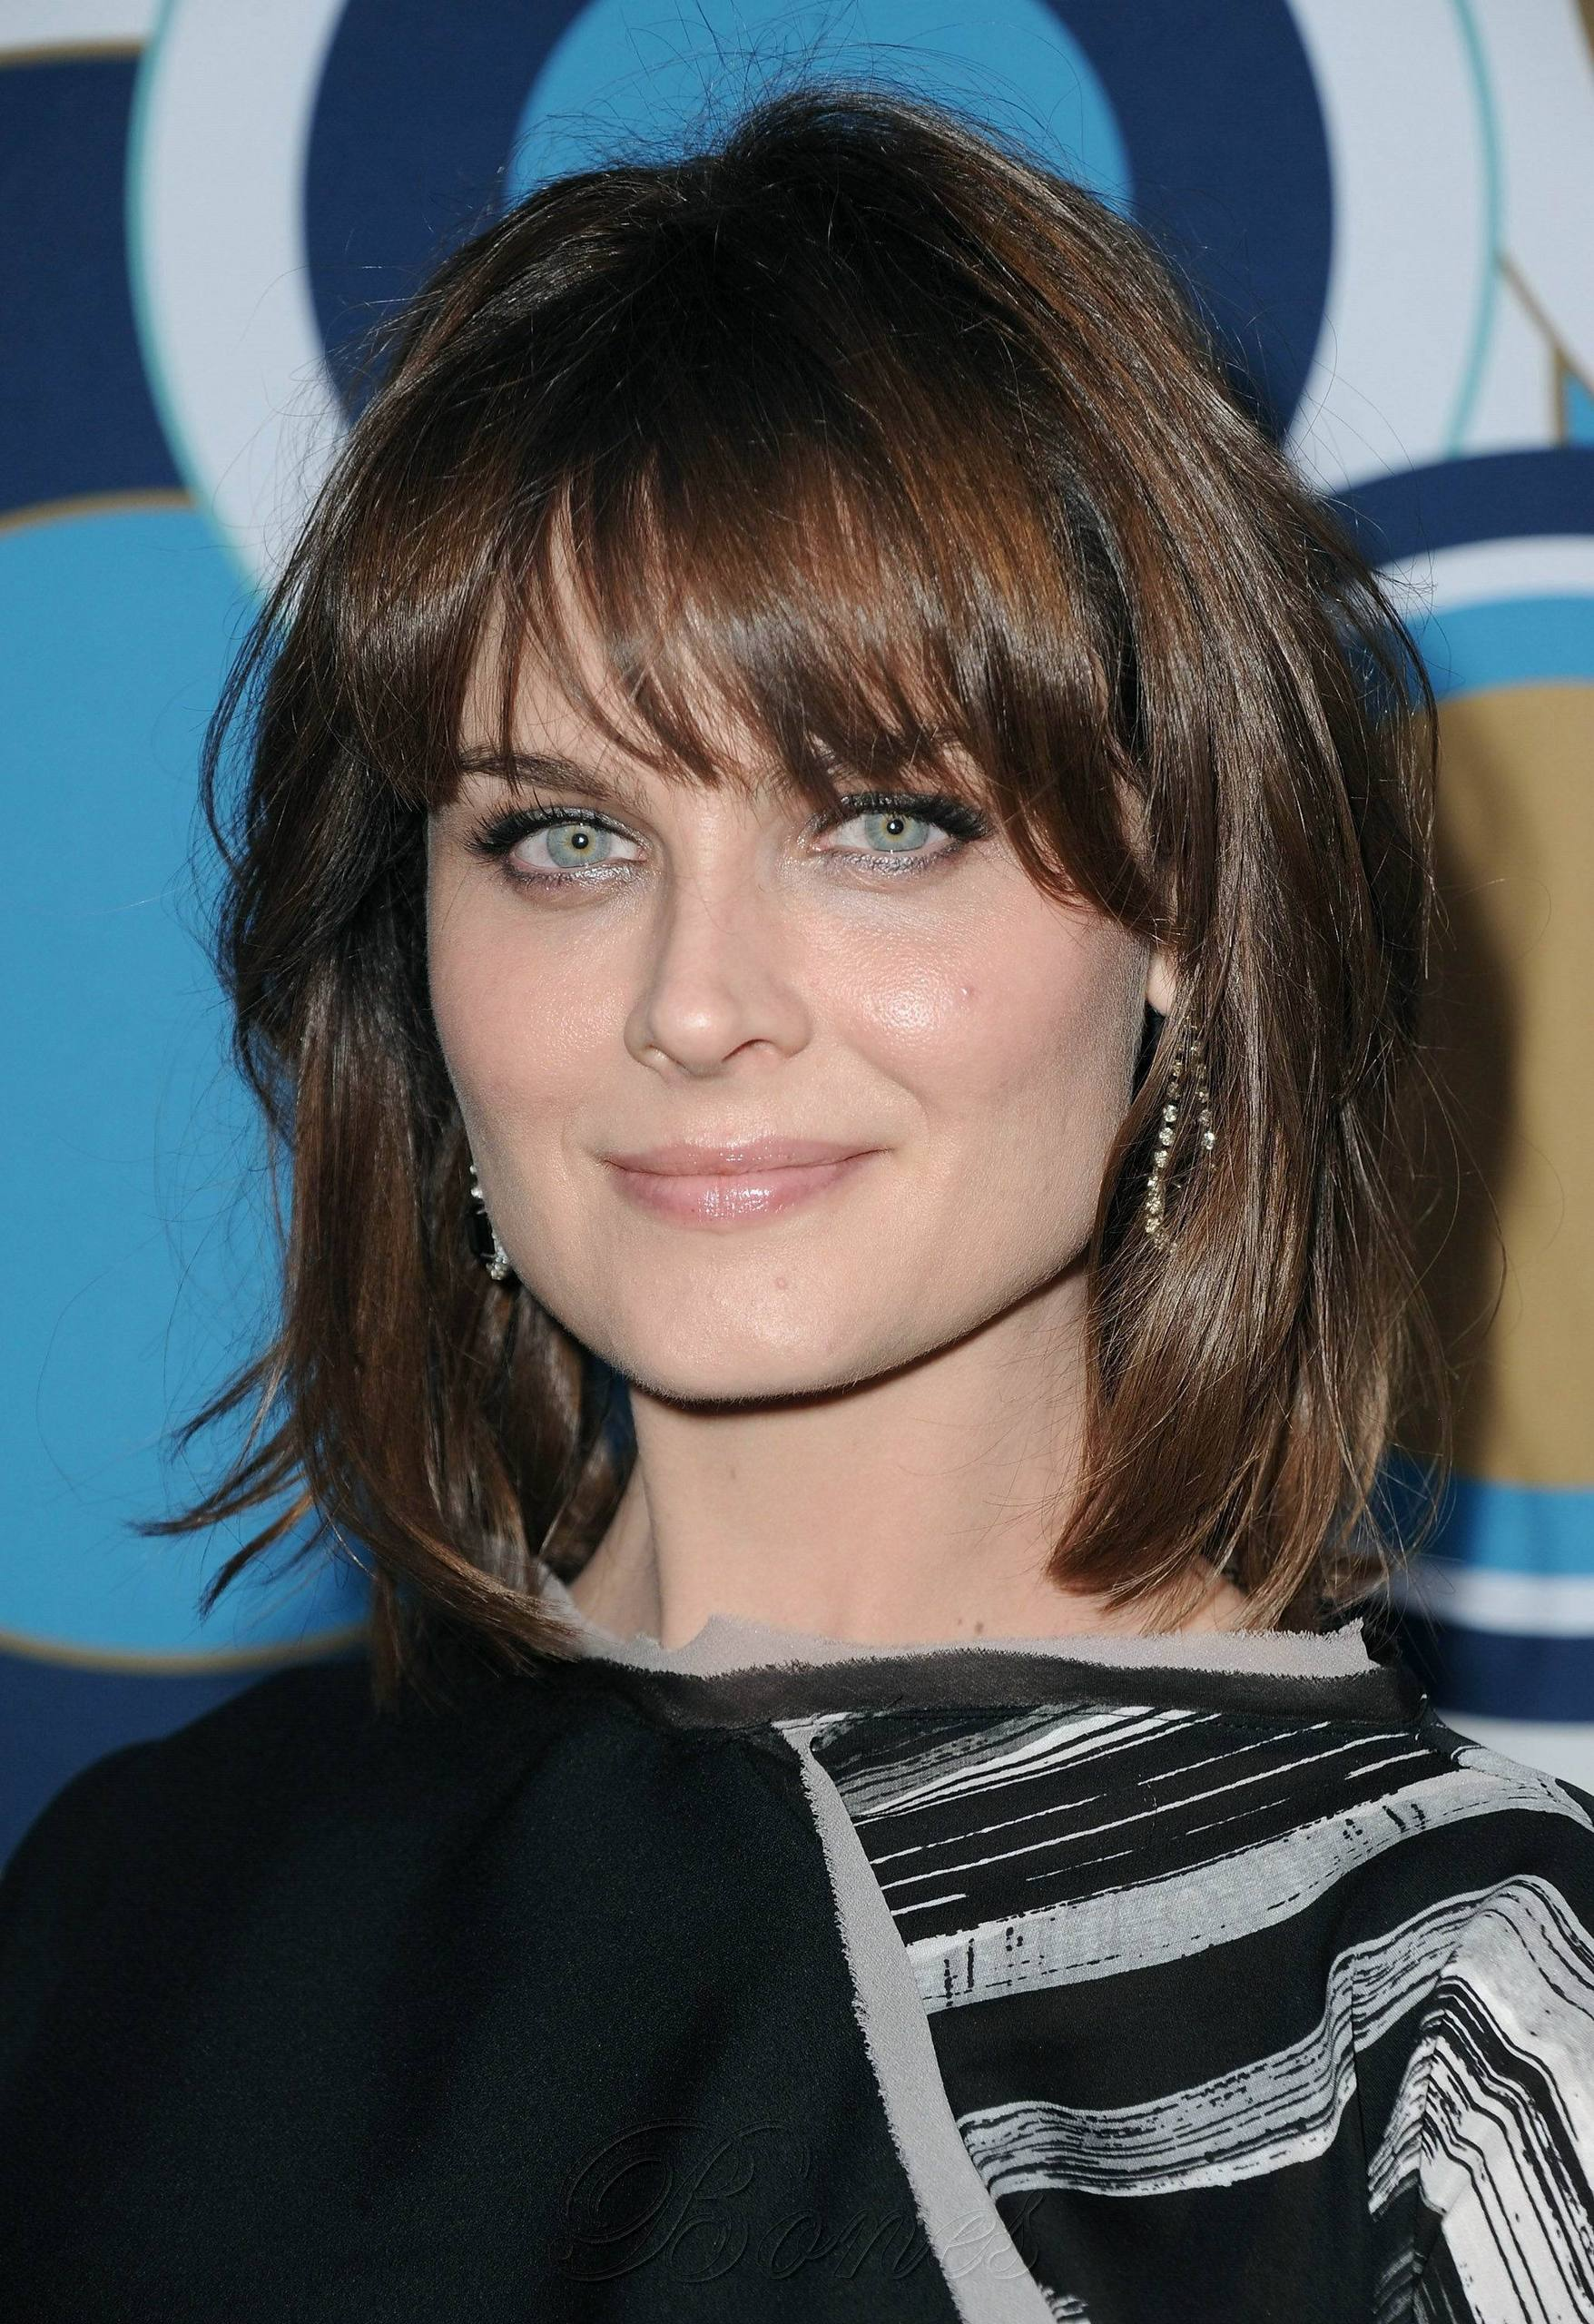 Bones Images Emily Deschanel HQ Images Of The Fox Fall